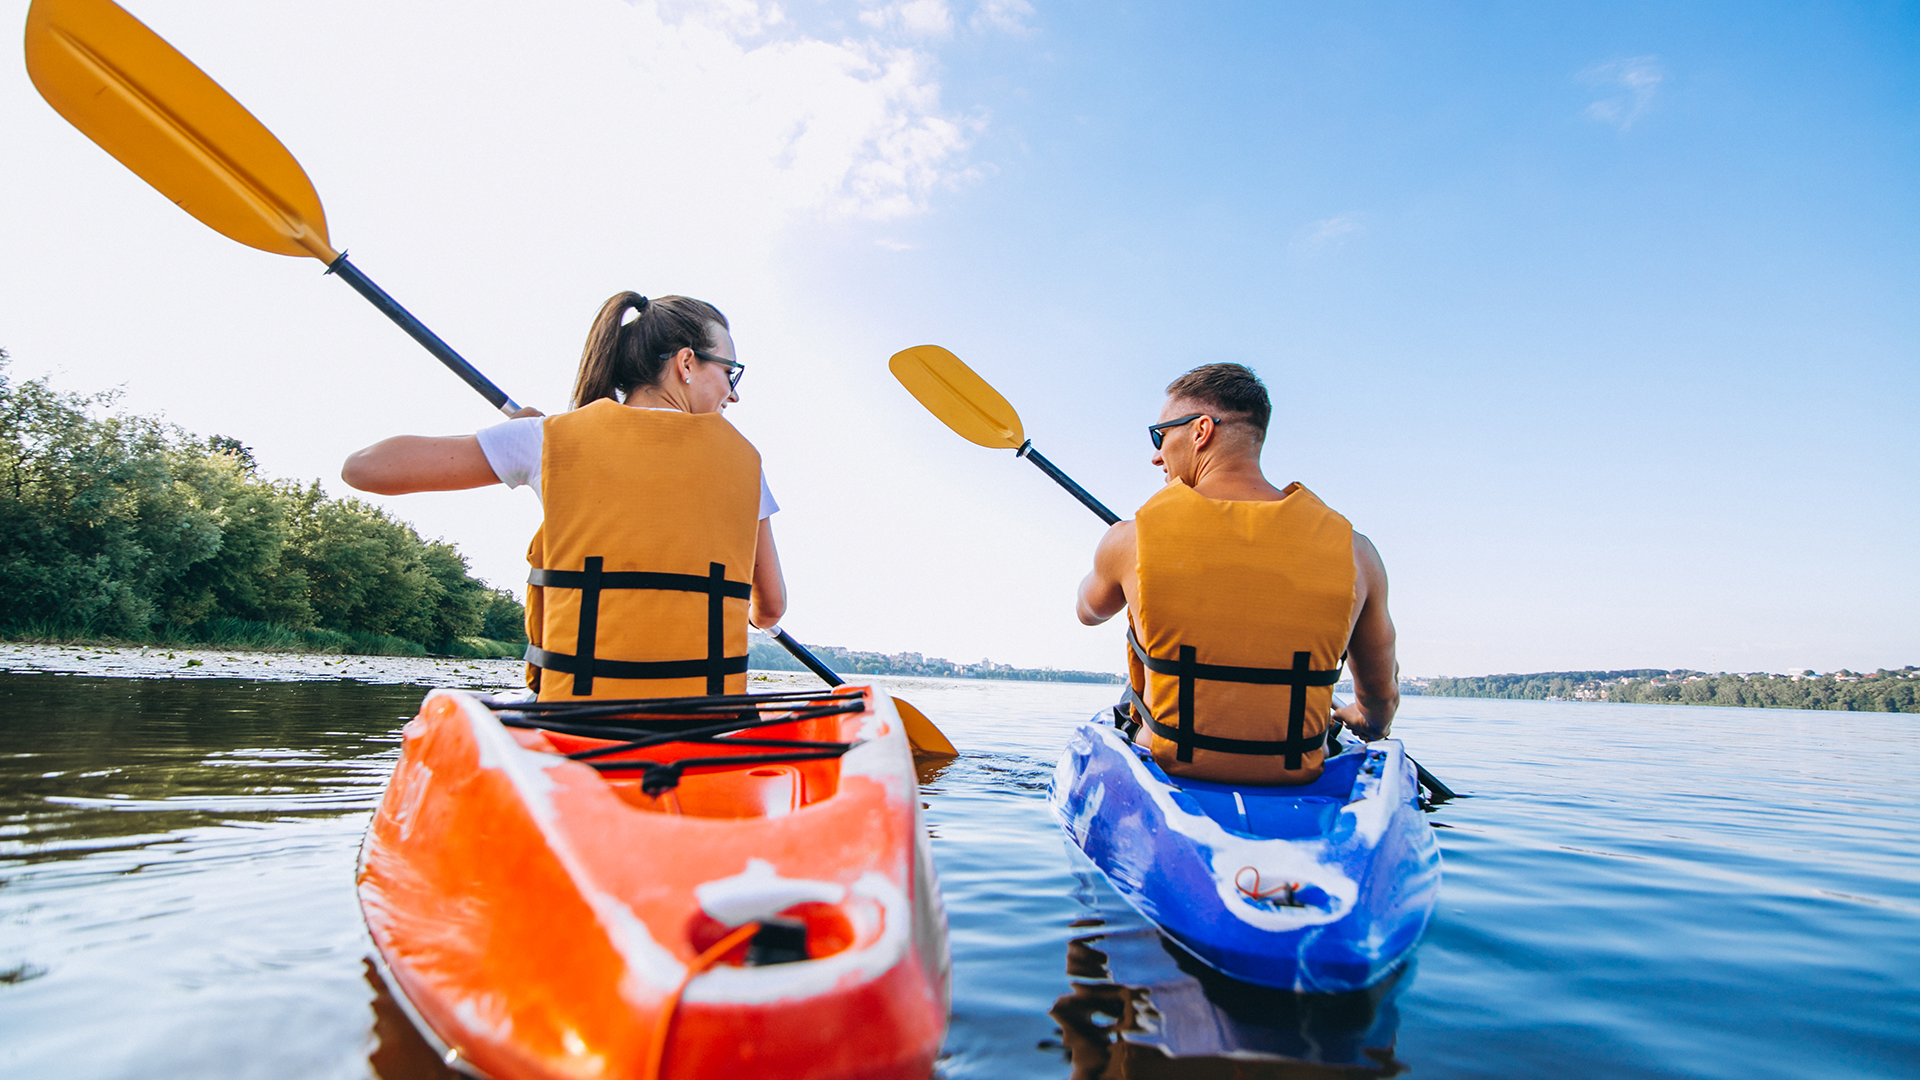 couple kayaking insured with term life insurance